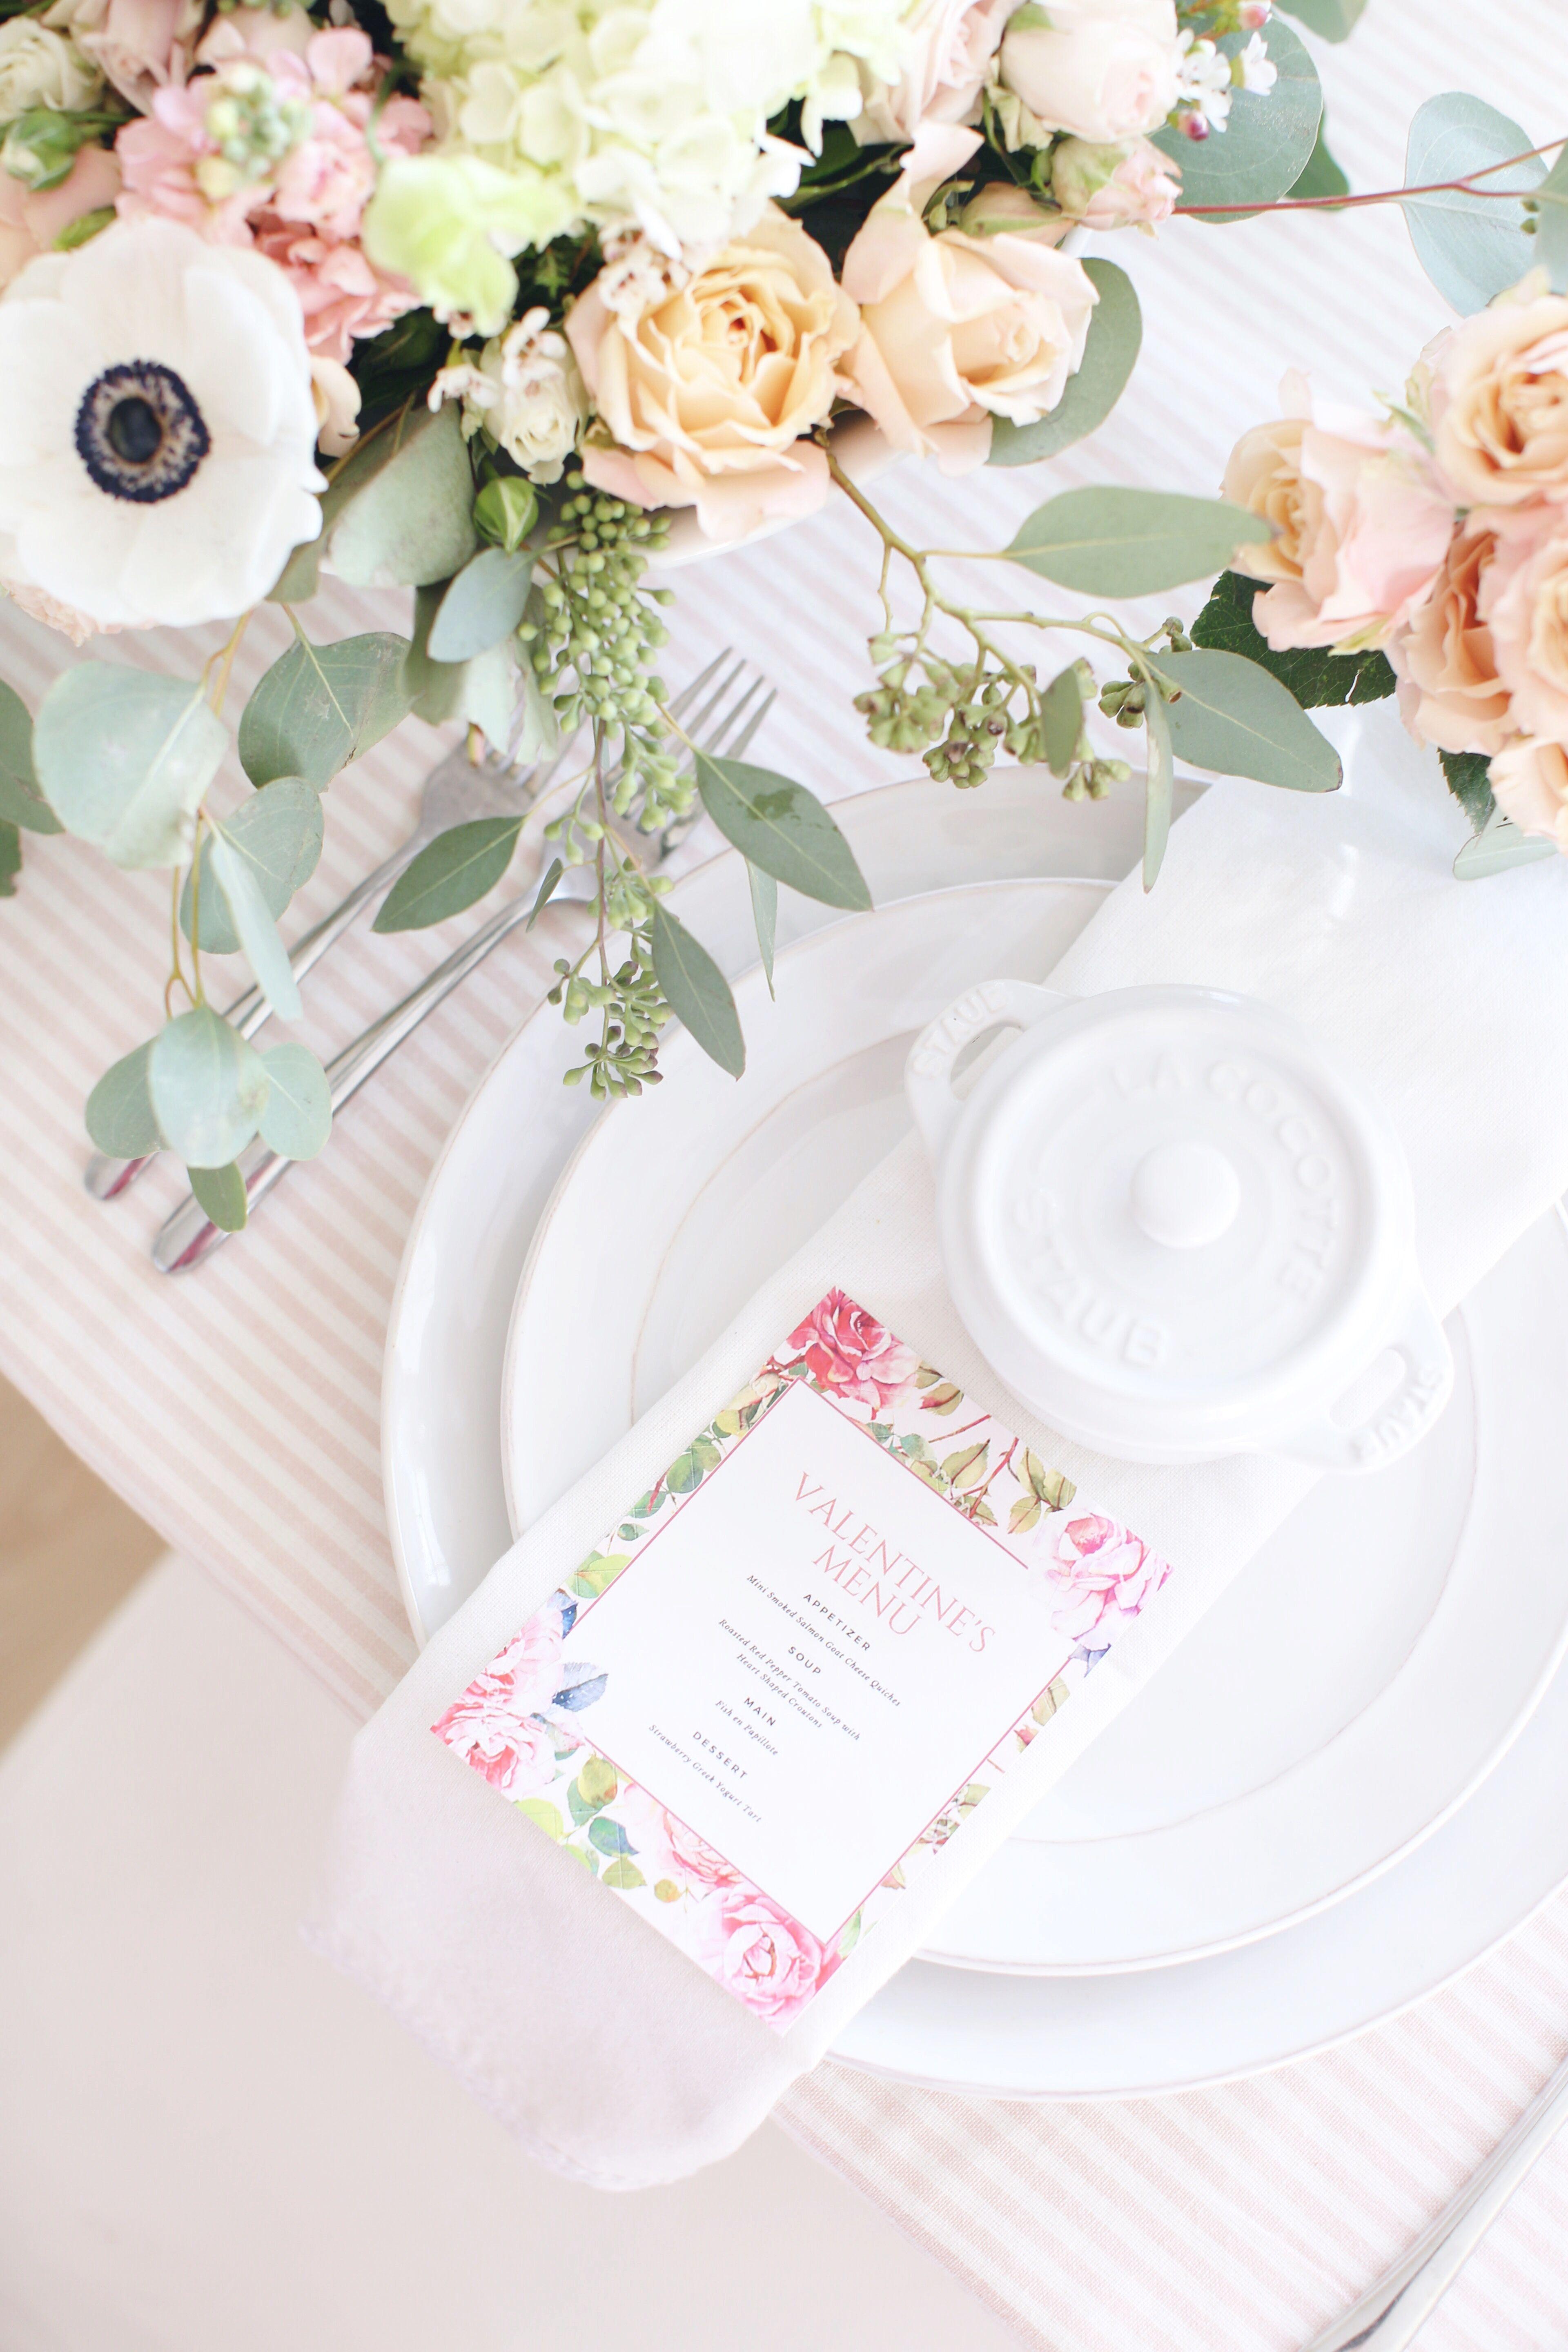 Fraiche Table Series: A complete guide to entertaining for Valentine's Day including a perfectly designed printable menu, table setting suggestions, what to wear and a workbook schedule that will keep you on track and totally prepared!